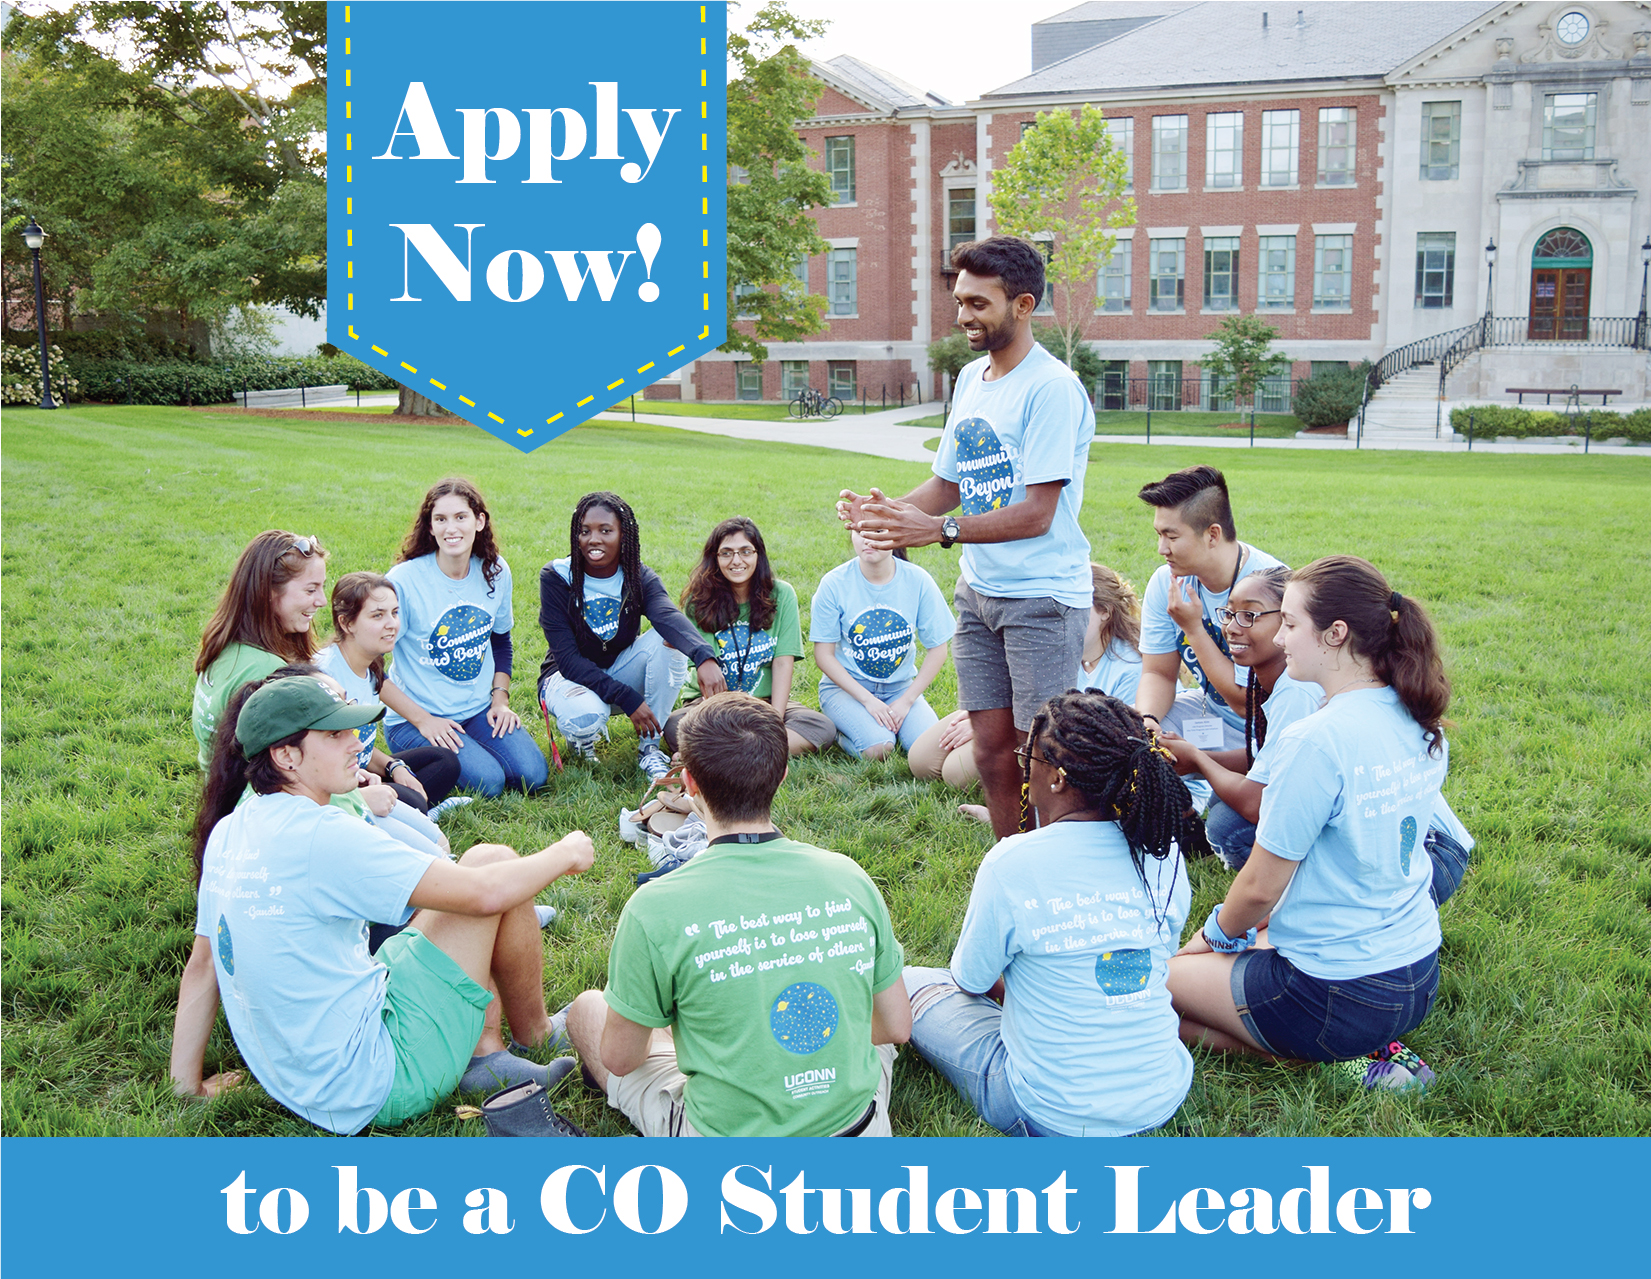 apply now co student leader apps button for web spring 2019